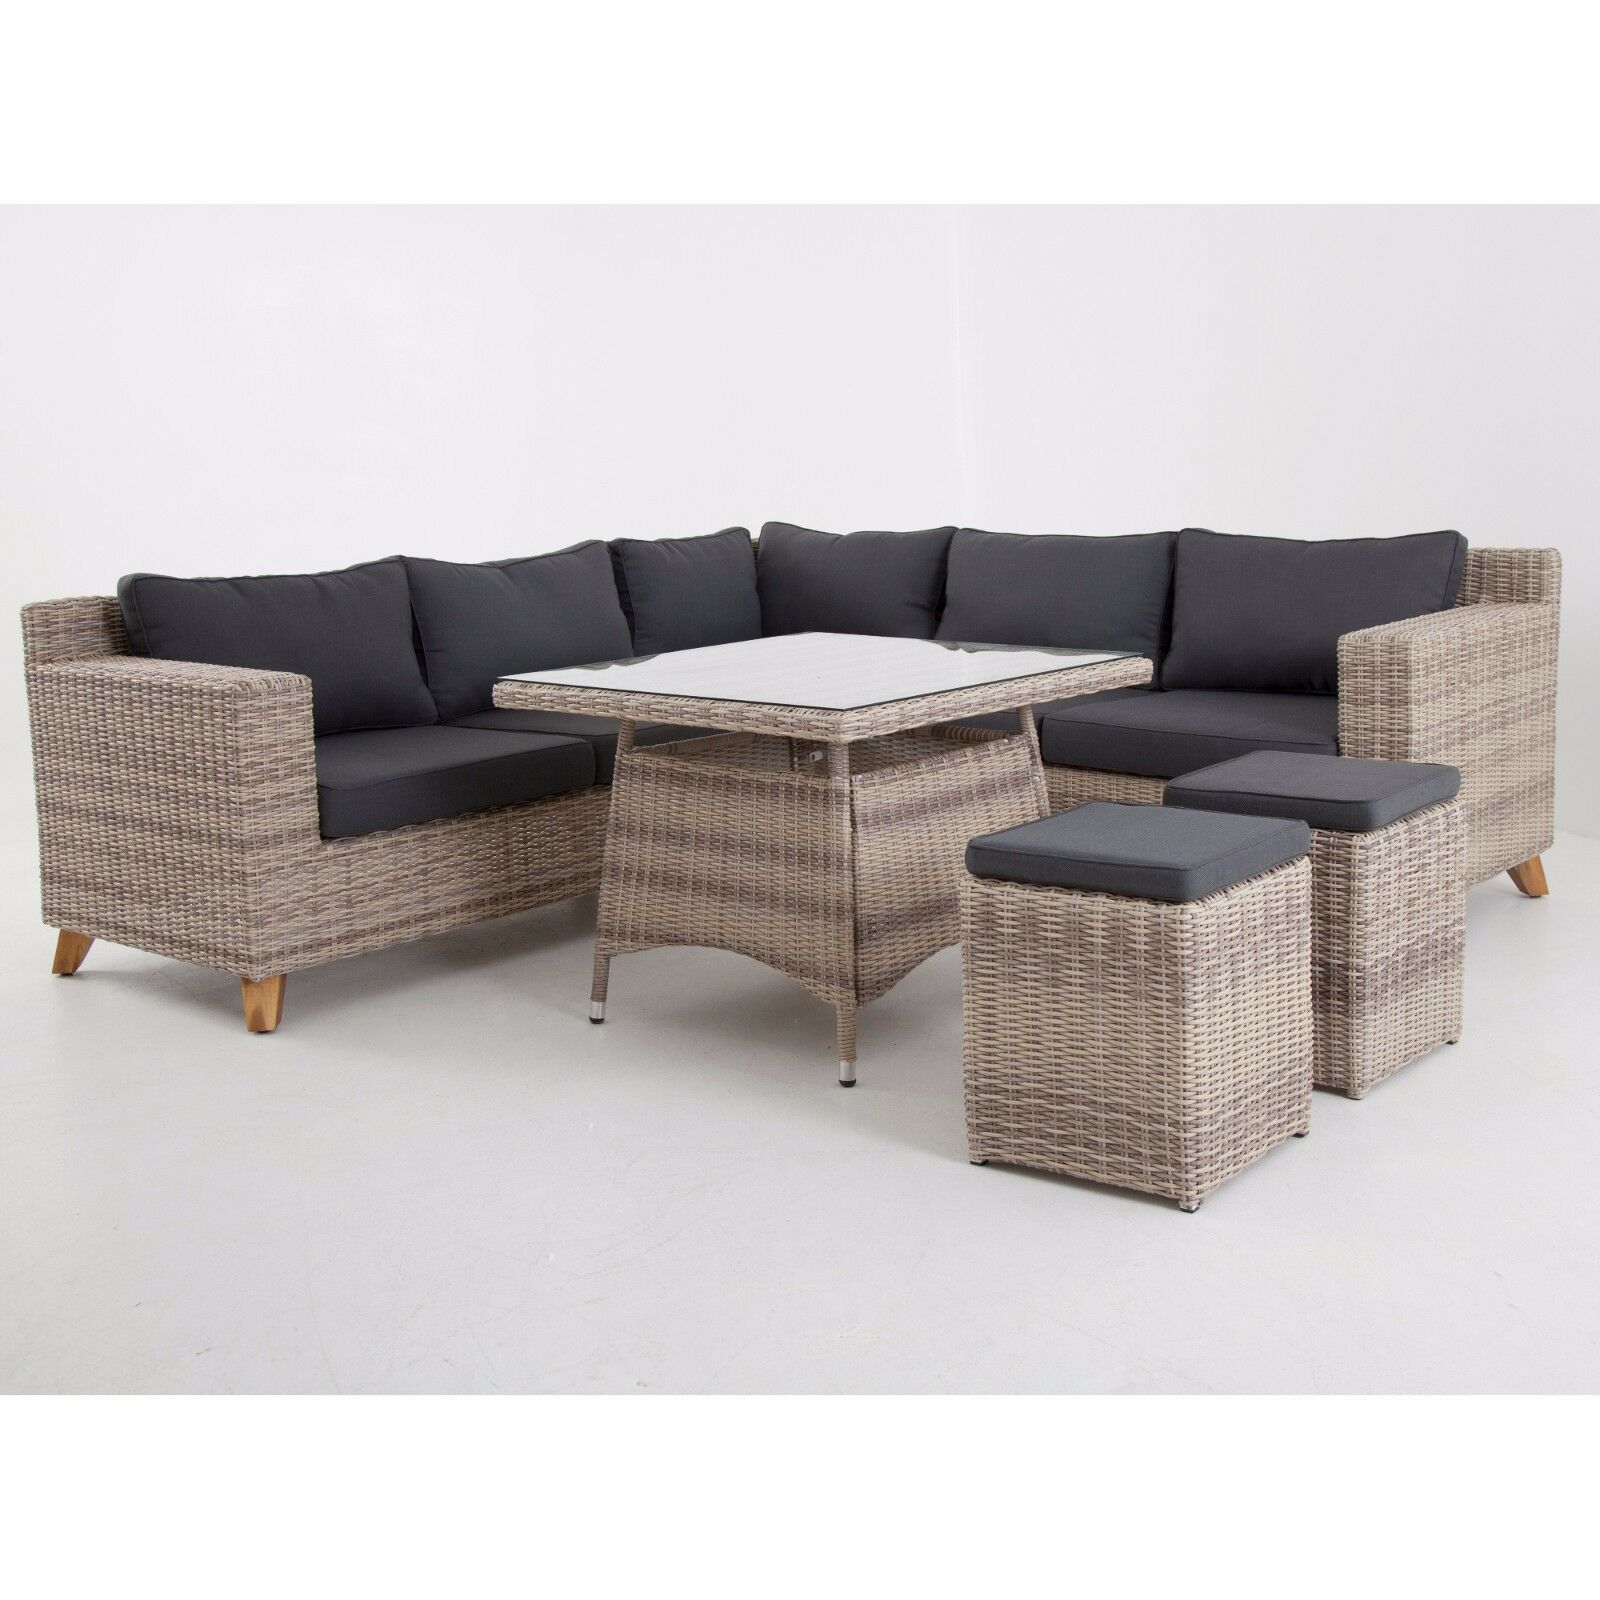 speisegruppe grau braun polyrattan aluminium tischgruppe. Black Bedroom Furniture Sets. Home Design Ideas